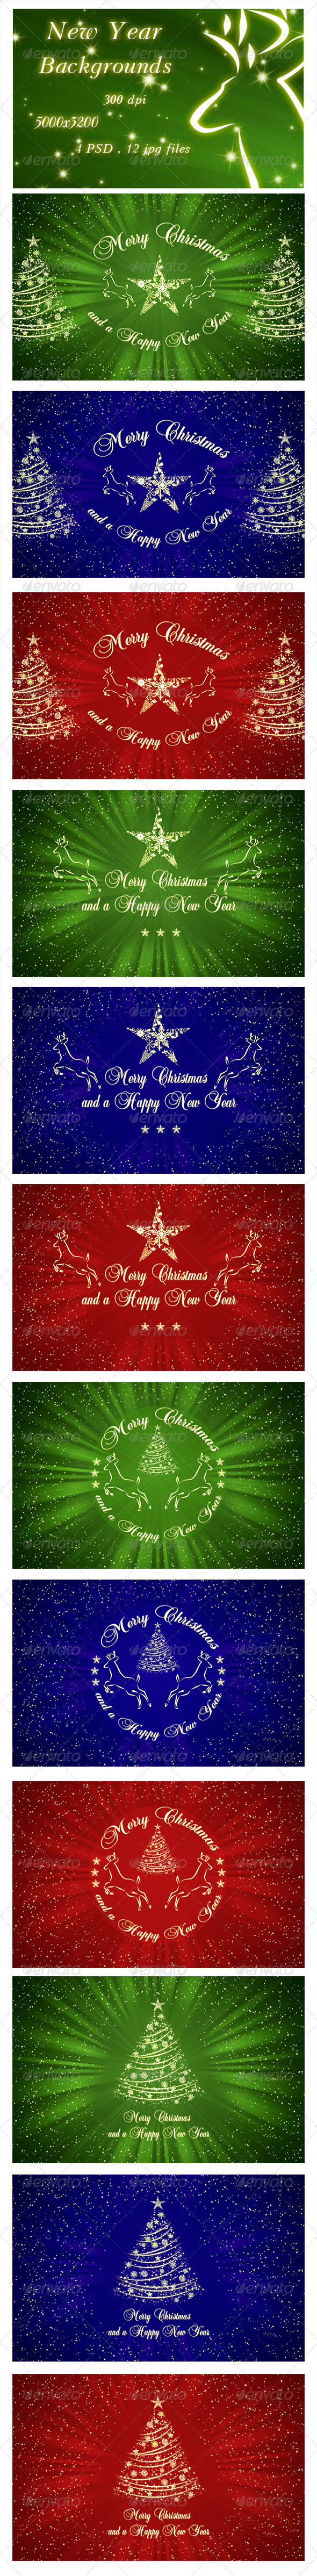 New Year Backgrounds - Miscellaneous Backgrounds